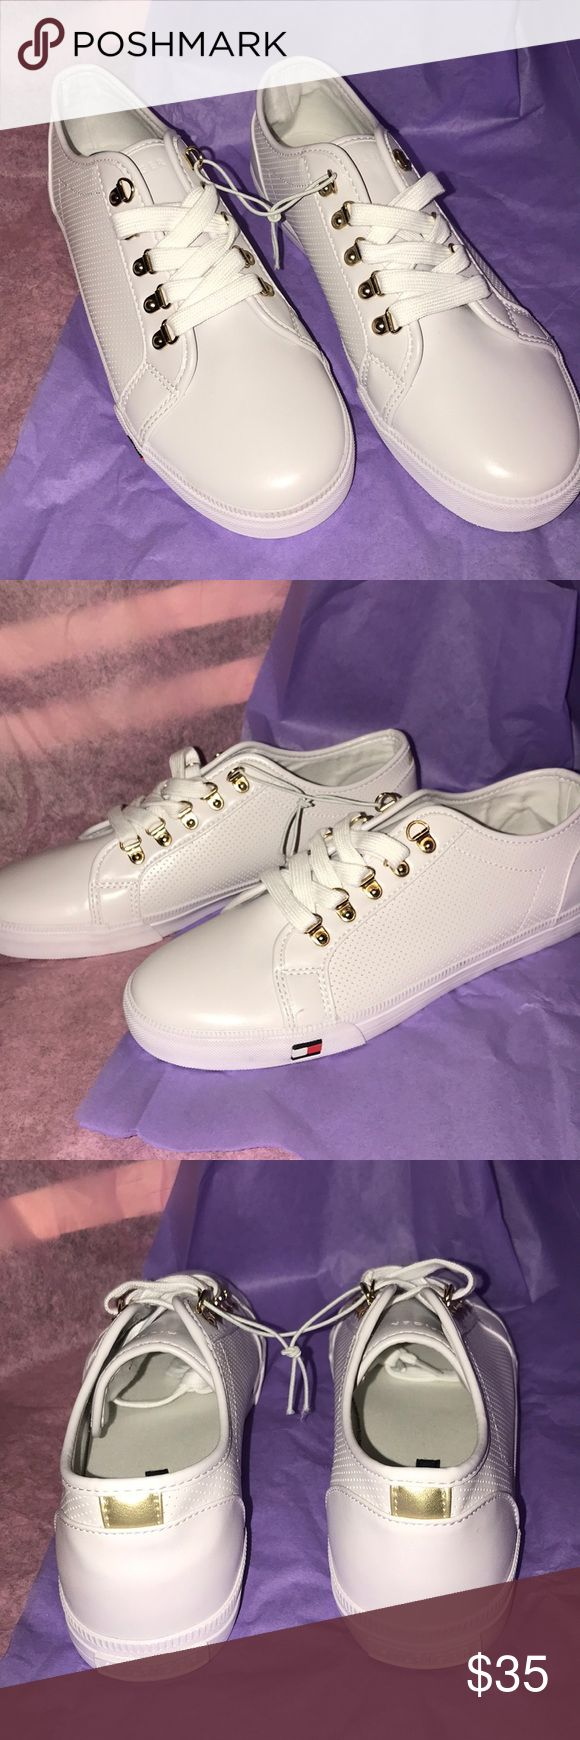 NWOT Tommy Hilfiger Sneakers New without tags, white with gold hardware Tommy Hilfiger sneakers. Size 10. Used as display model, and tried on a few times. Perfect with jeans or with a casual dress! Tommy Hilfiger Shoes